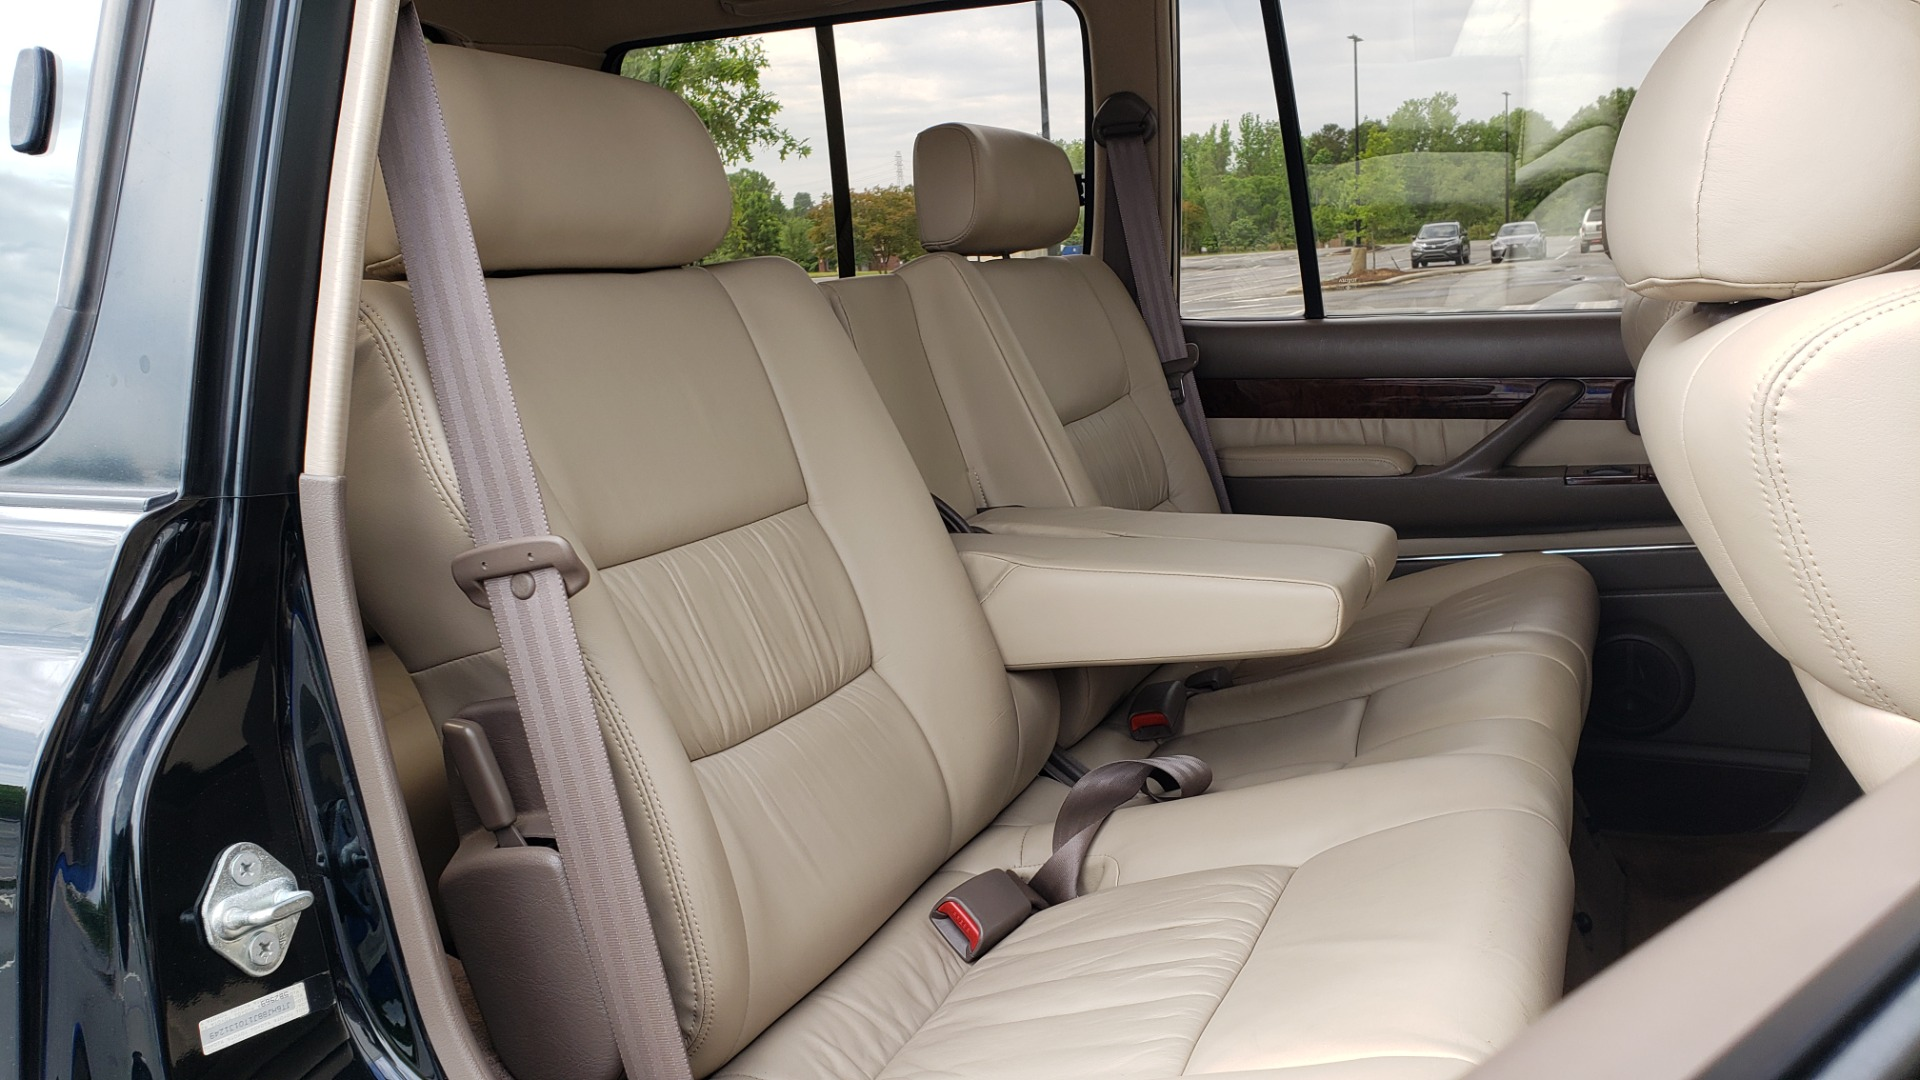 Used 1996 Lexus LX 450 AWD / 4.5L 6-CYL / 4-SPD AUTO / RUNNING BOARDS / NEW BFG TIRES for sale $49,995 at Formula Imports in Charlotte NC 28227 78